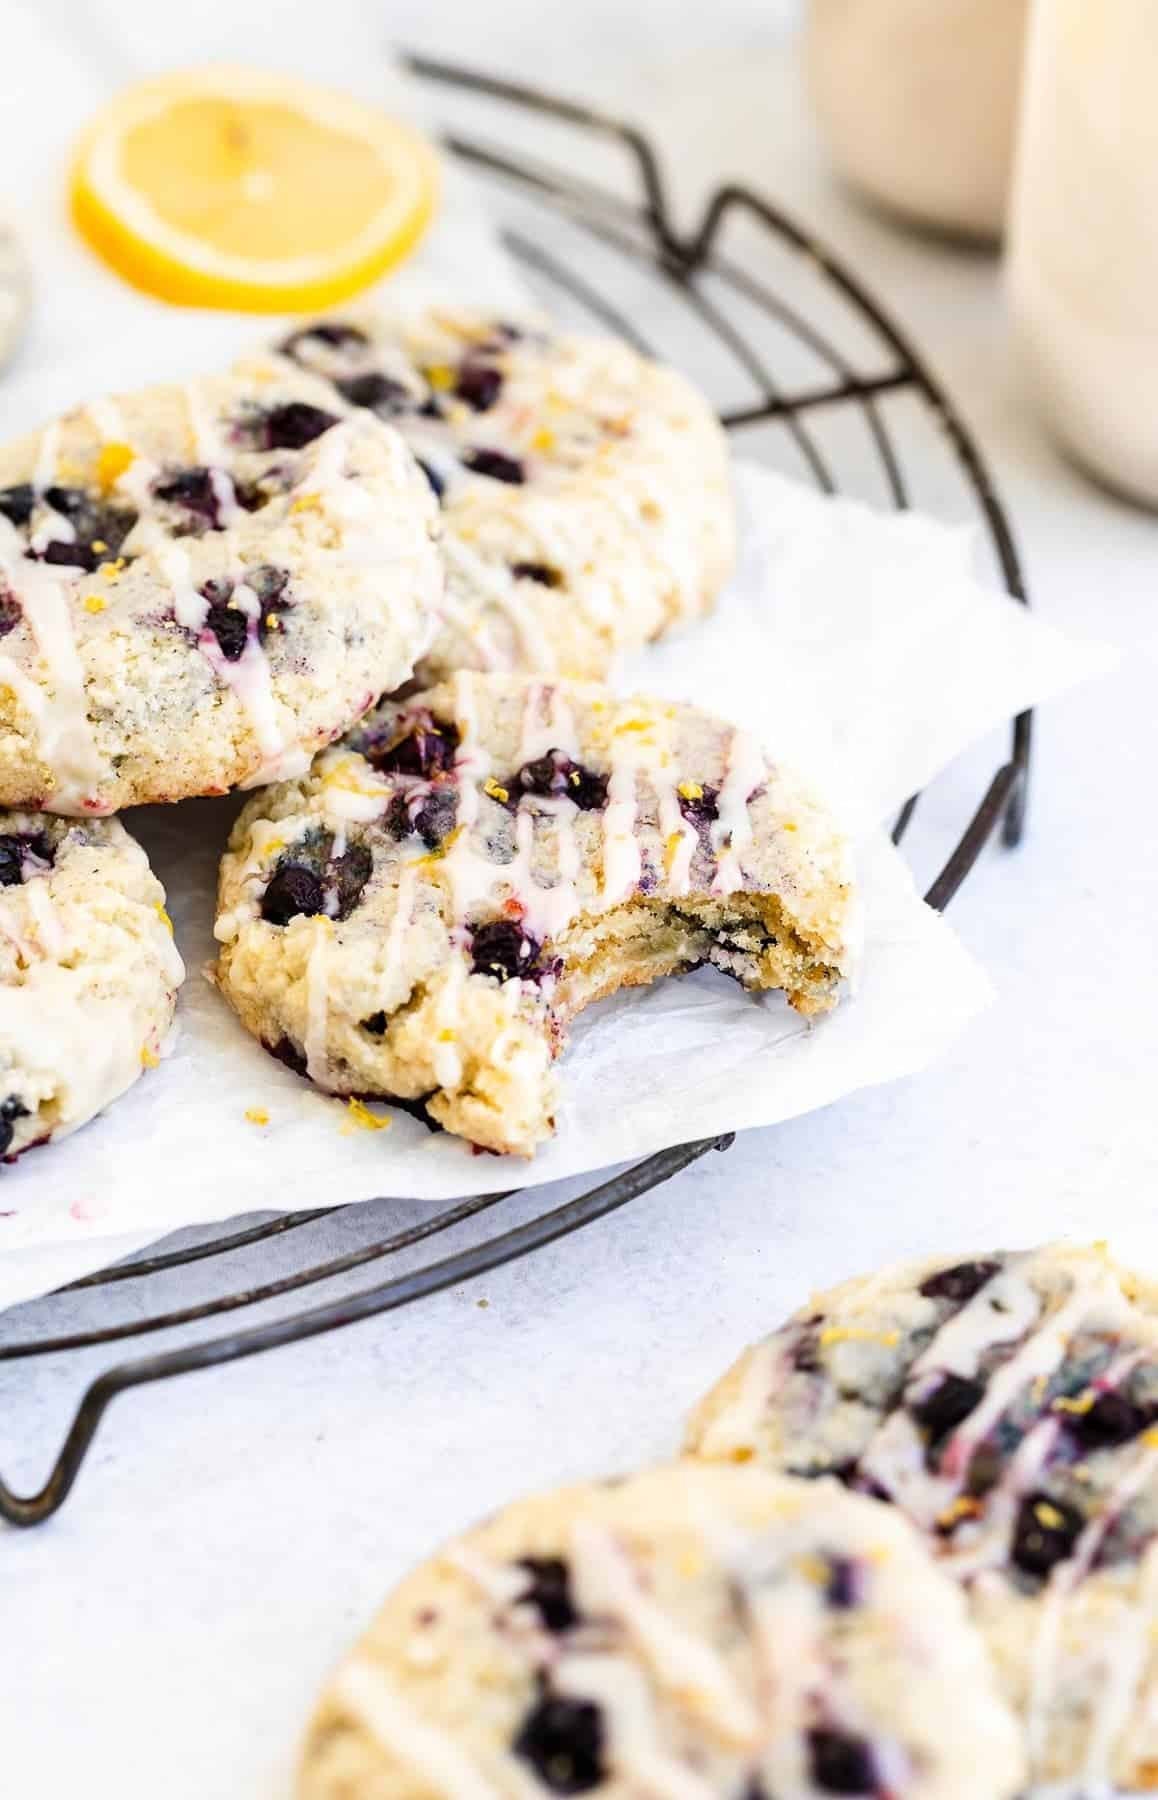 vegan lemon blueberry cookies with a bite taken out on a wire rack